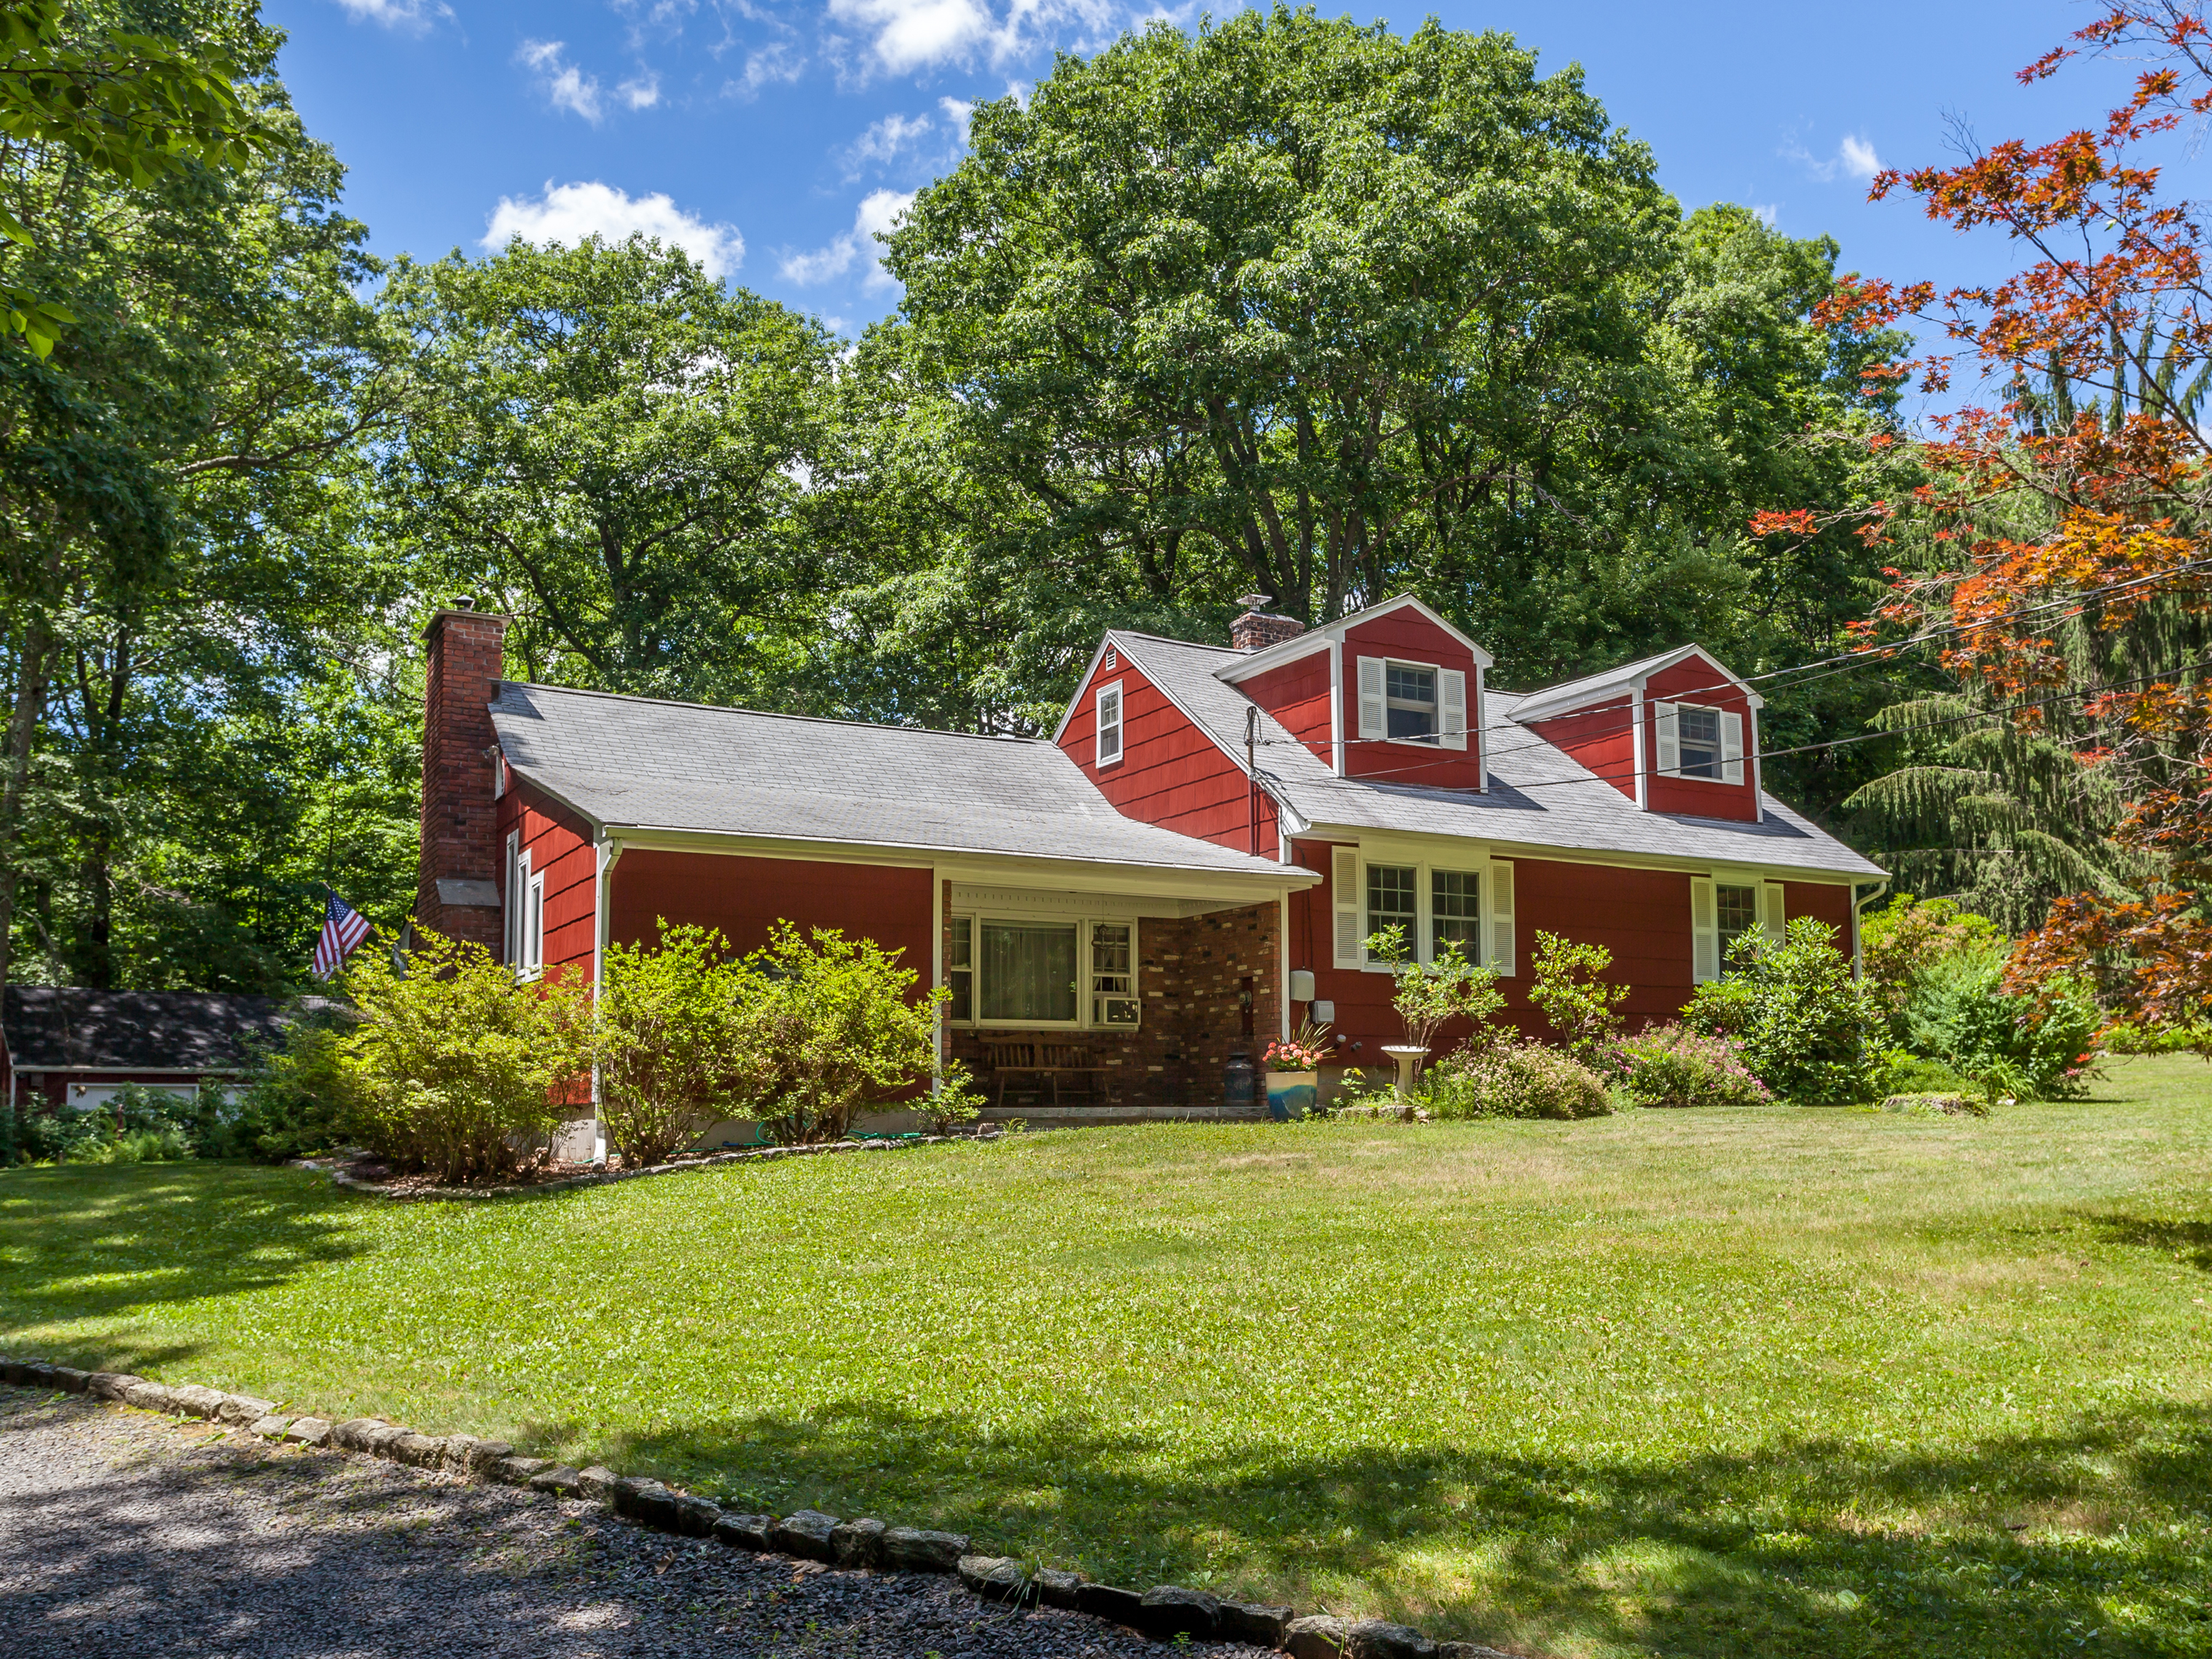 Single Family Home for Sale at Expanded Cape 45 Shortwoods Road New Fairfield, Connecticut, 06812 United States